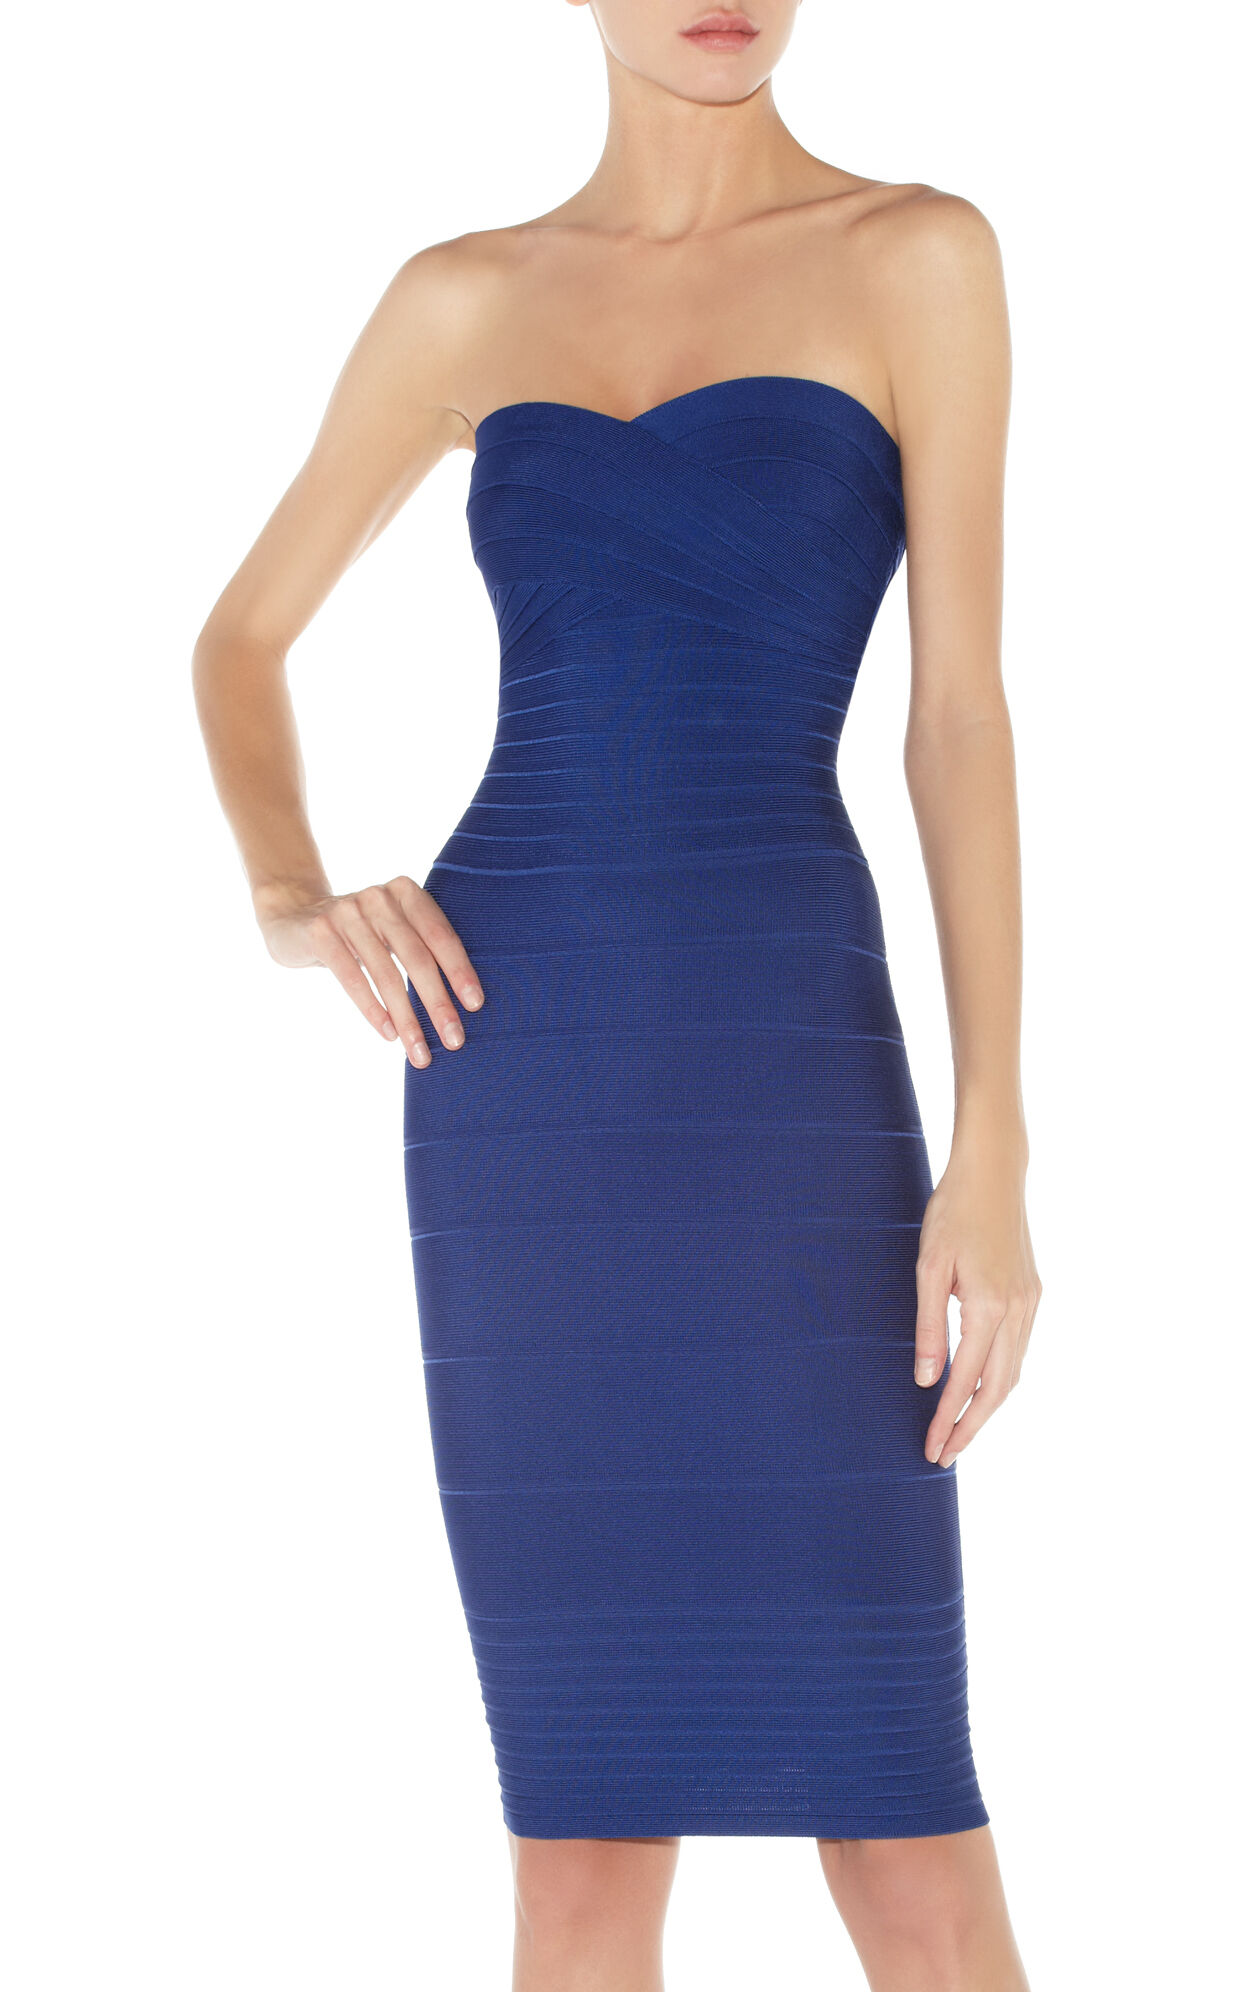 Nazik Signature Strapless Bandage Dress